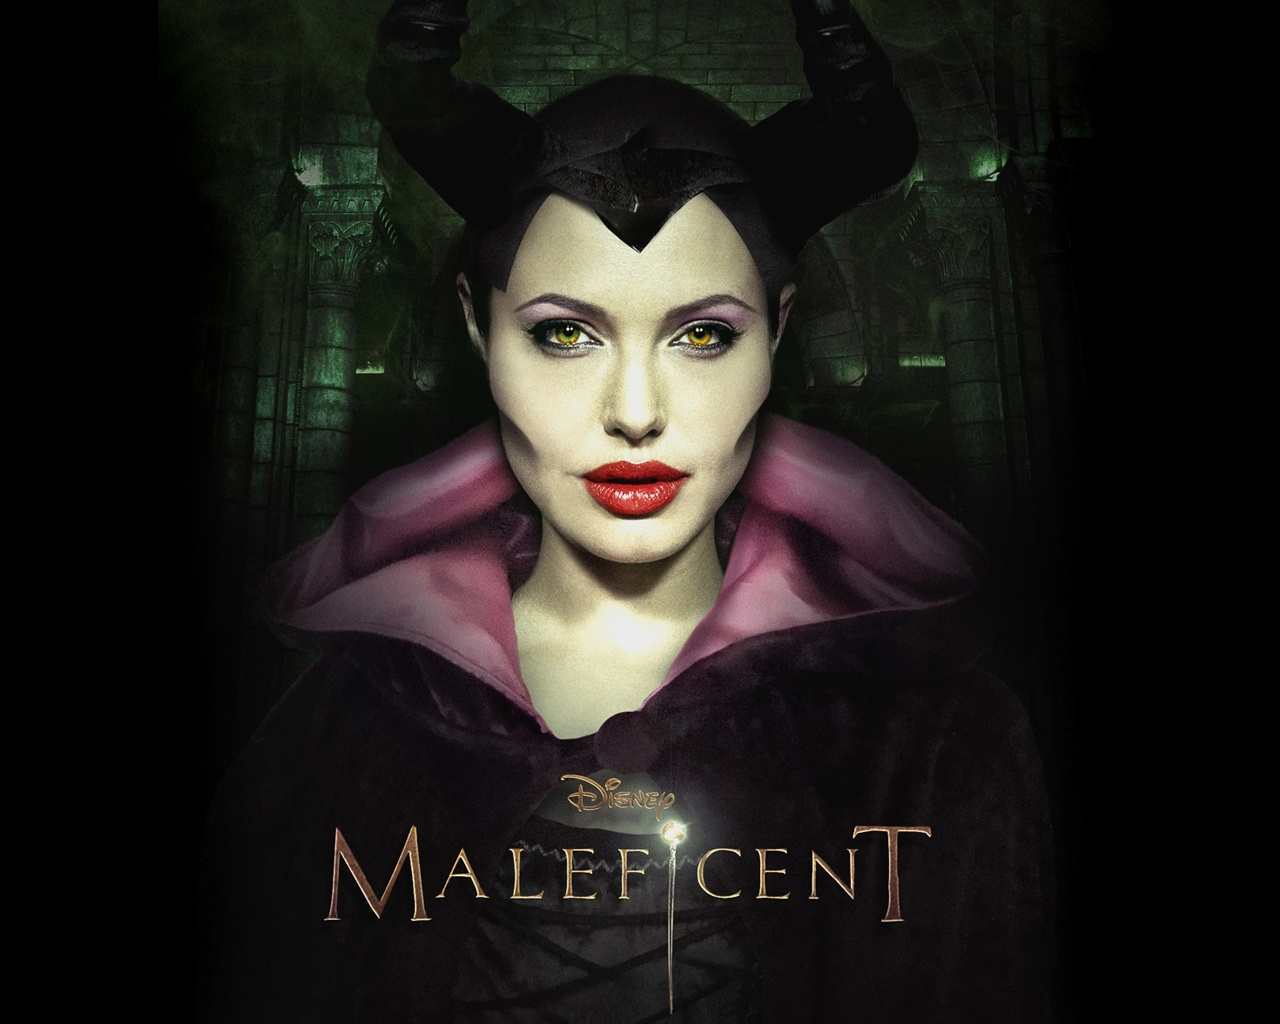 Angelina Jolie Maleficent 2014 Movie Wallpaper Wallpaper